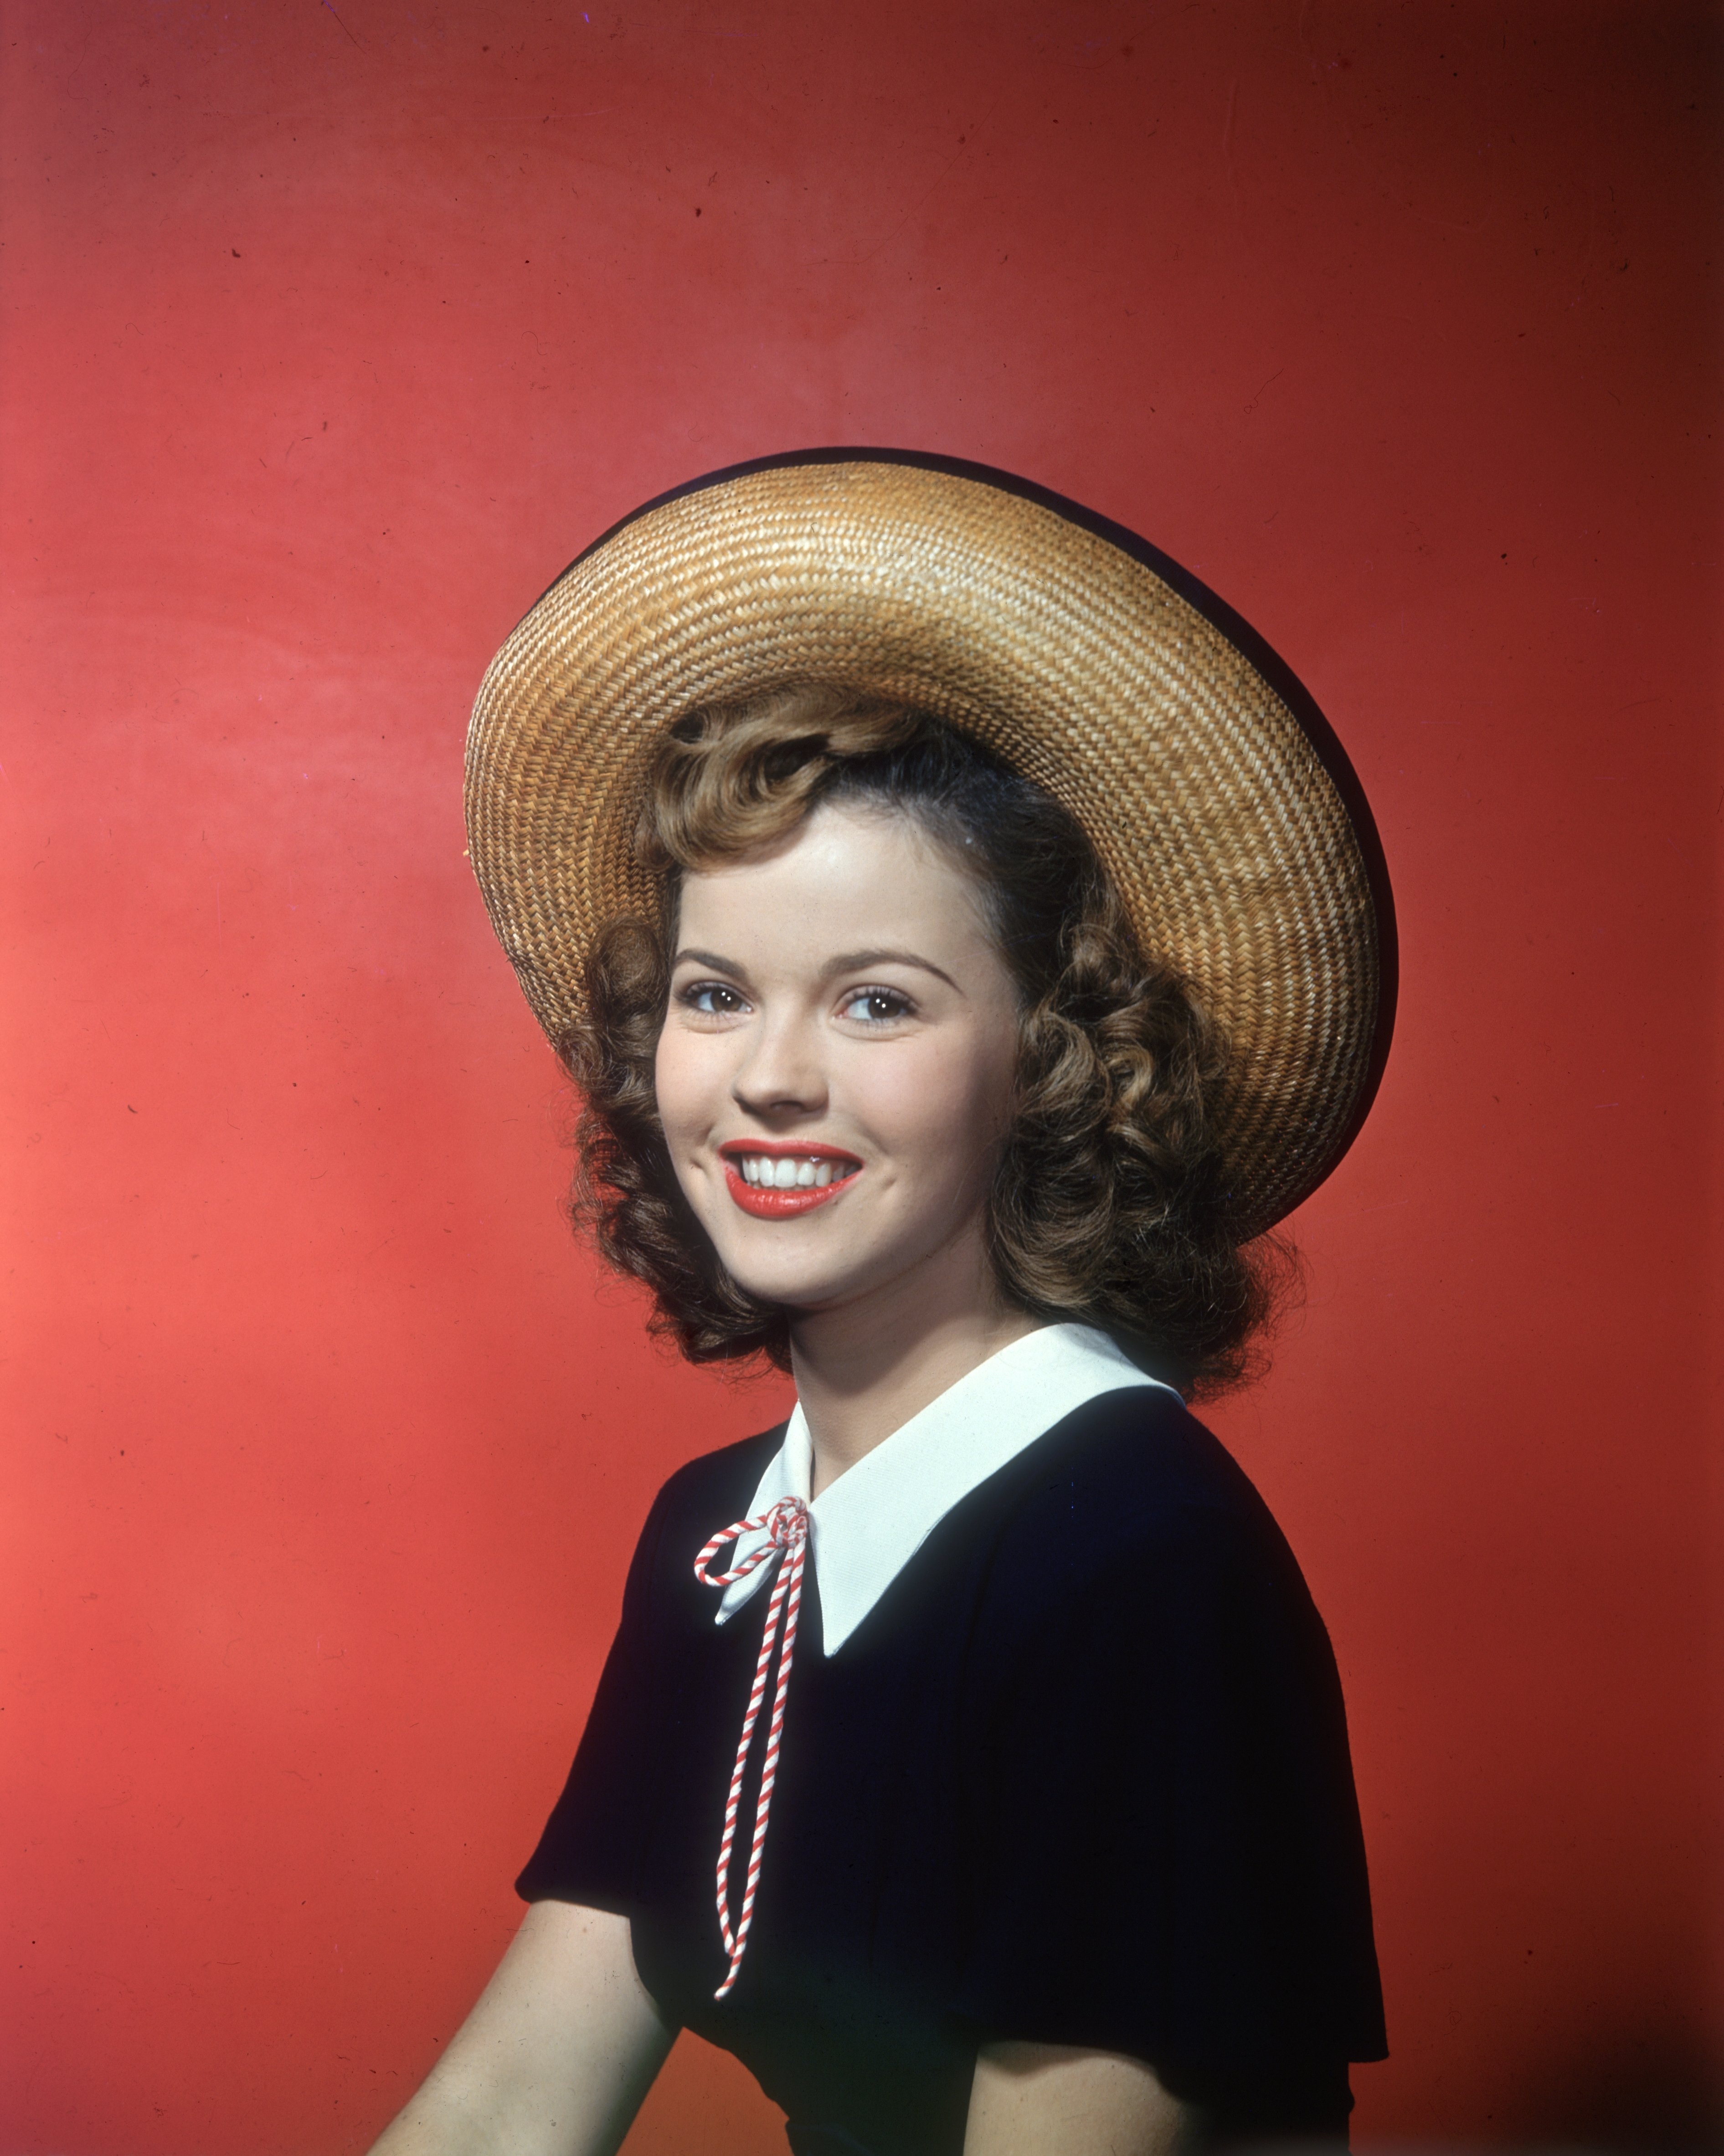 Smiling studio portrait of American actor Shirley Temple, sitting in front of a red backdrop, wearing a straw hat and black top with white collar. circa 1945 |Source: Getty Images